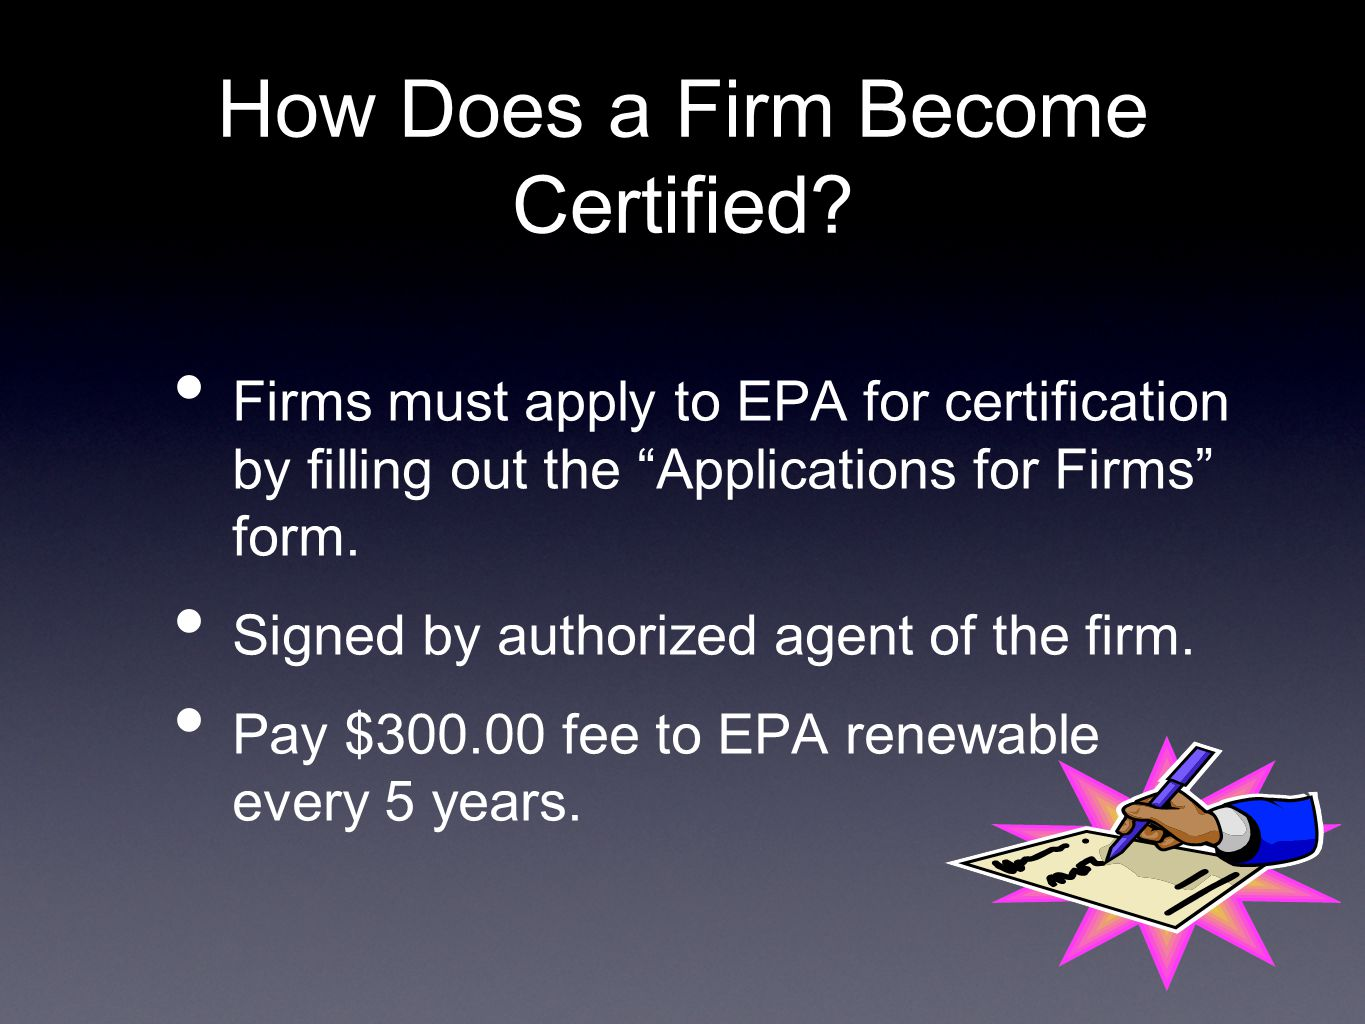 What Are the Responsibilities of a Certified Firm.